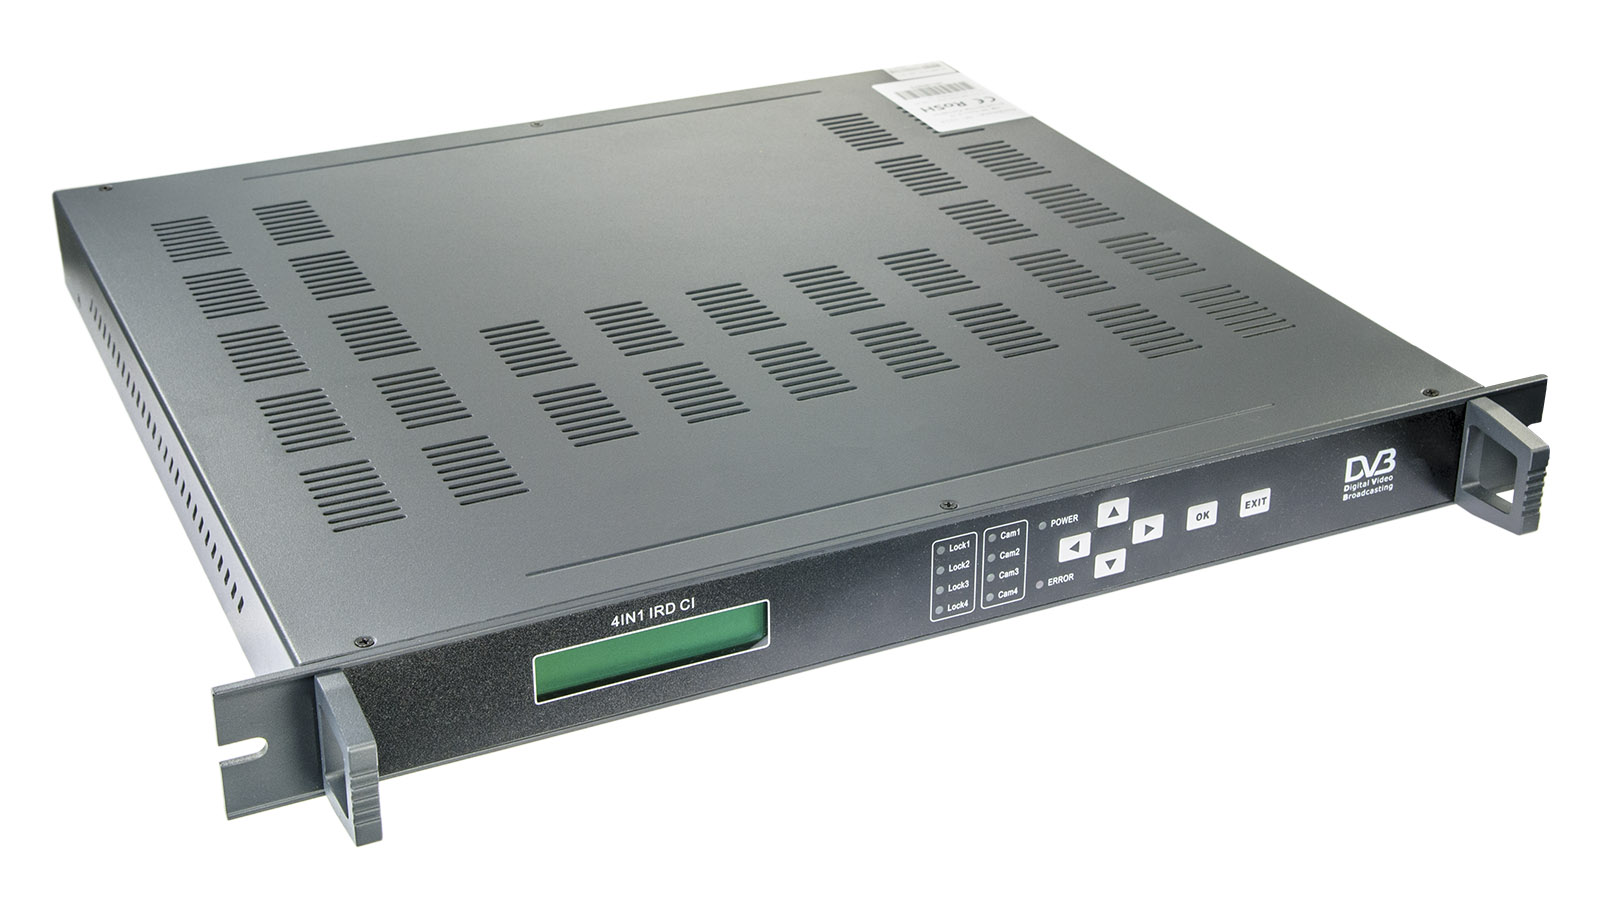 SC-5219 DVB-S/S2 4-channel IRD with CI